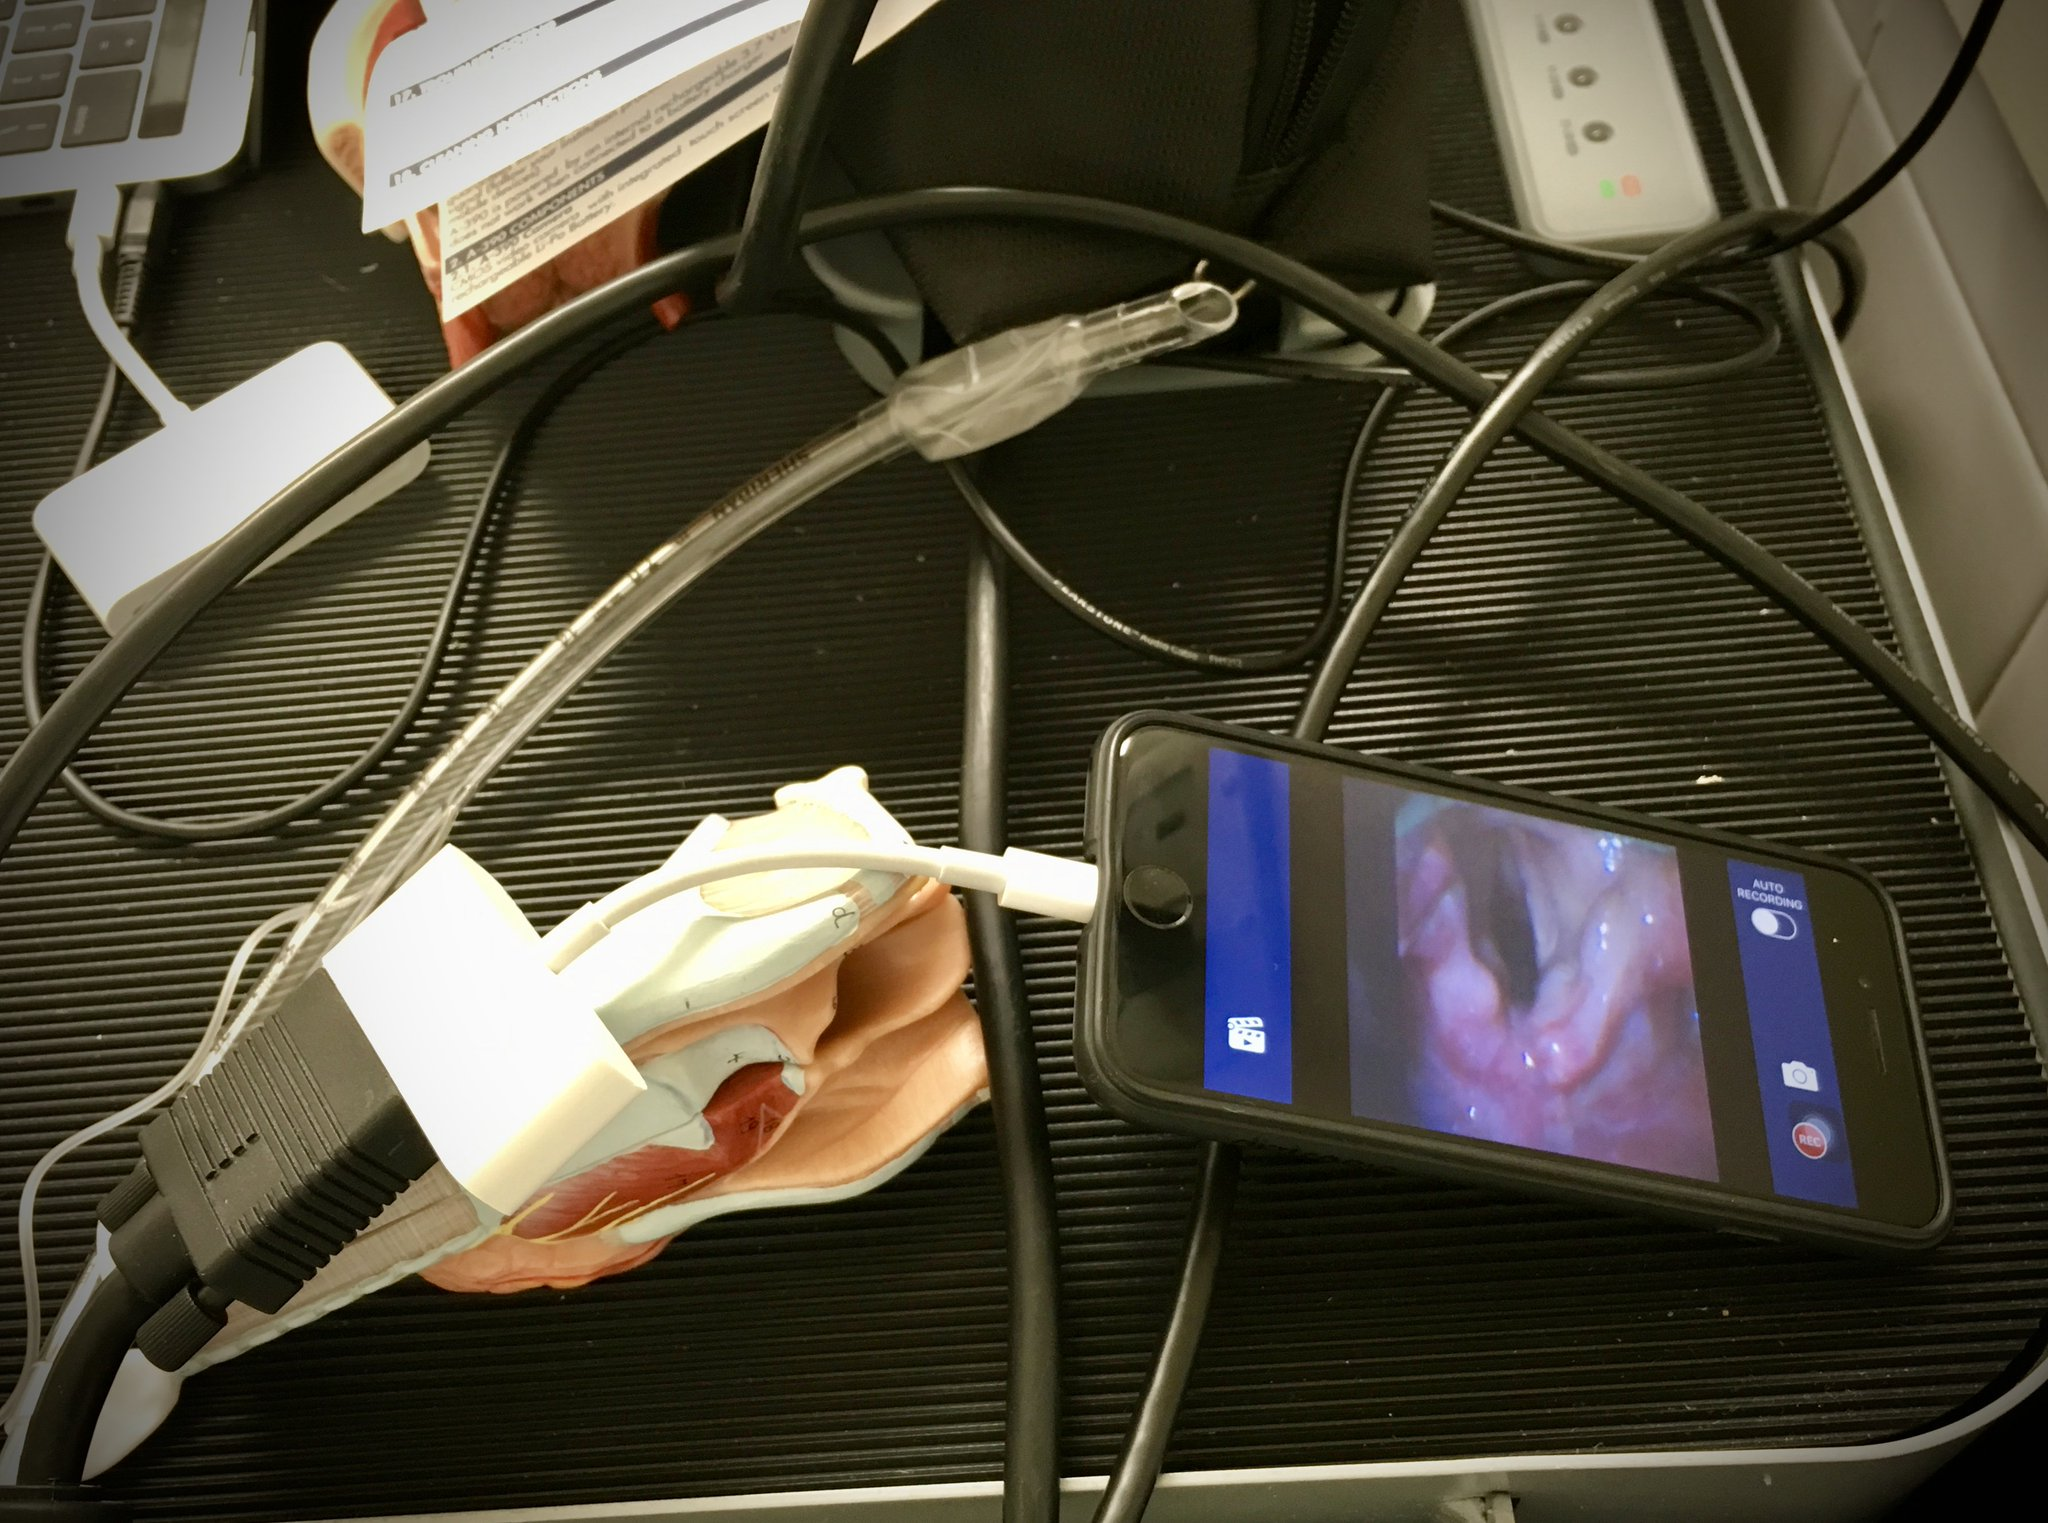 Repurposing old technology at #PAC2018 Trachea model holding up HDMI cable to iPhone throwing glottic images via new Airtraq camera to multiple screens for Airway course! @jducanto @gueromedico @ResusOnTheRoad @jameshorowitzmd @Doclief See u all next year! https://t.co/1eIkRq6mVI